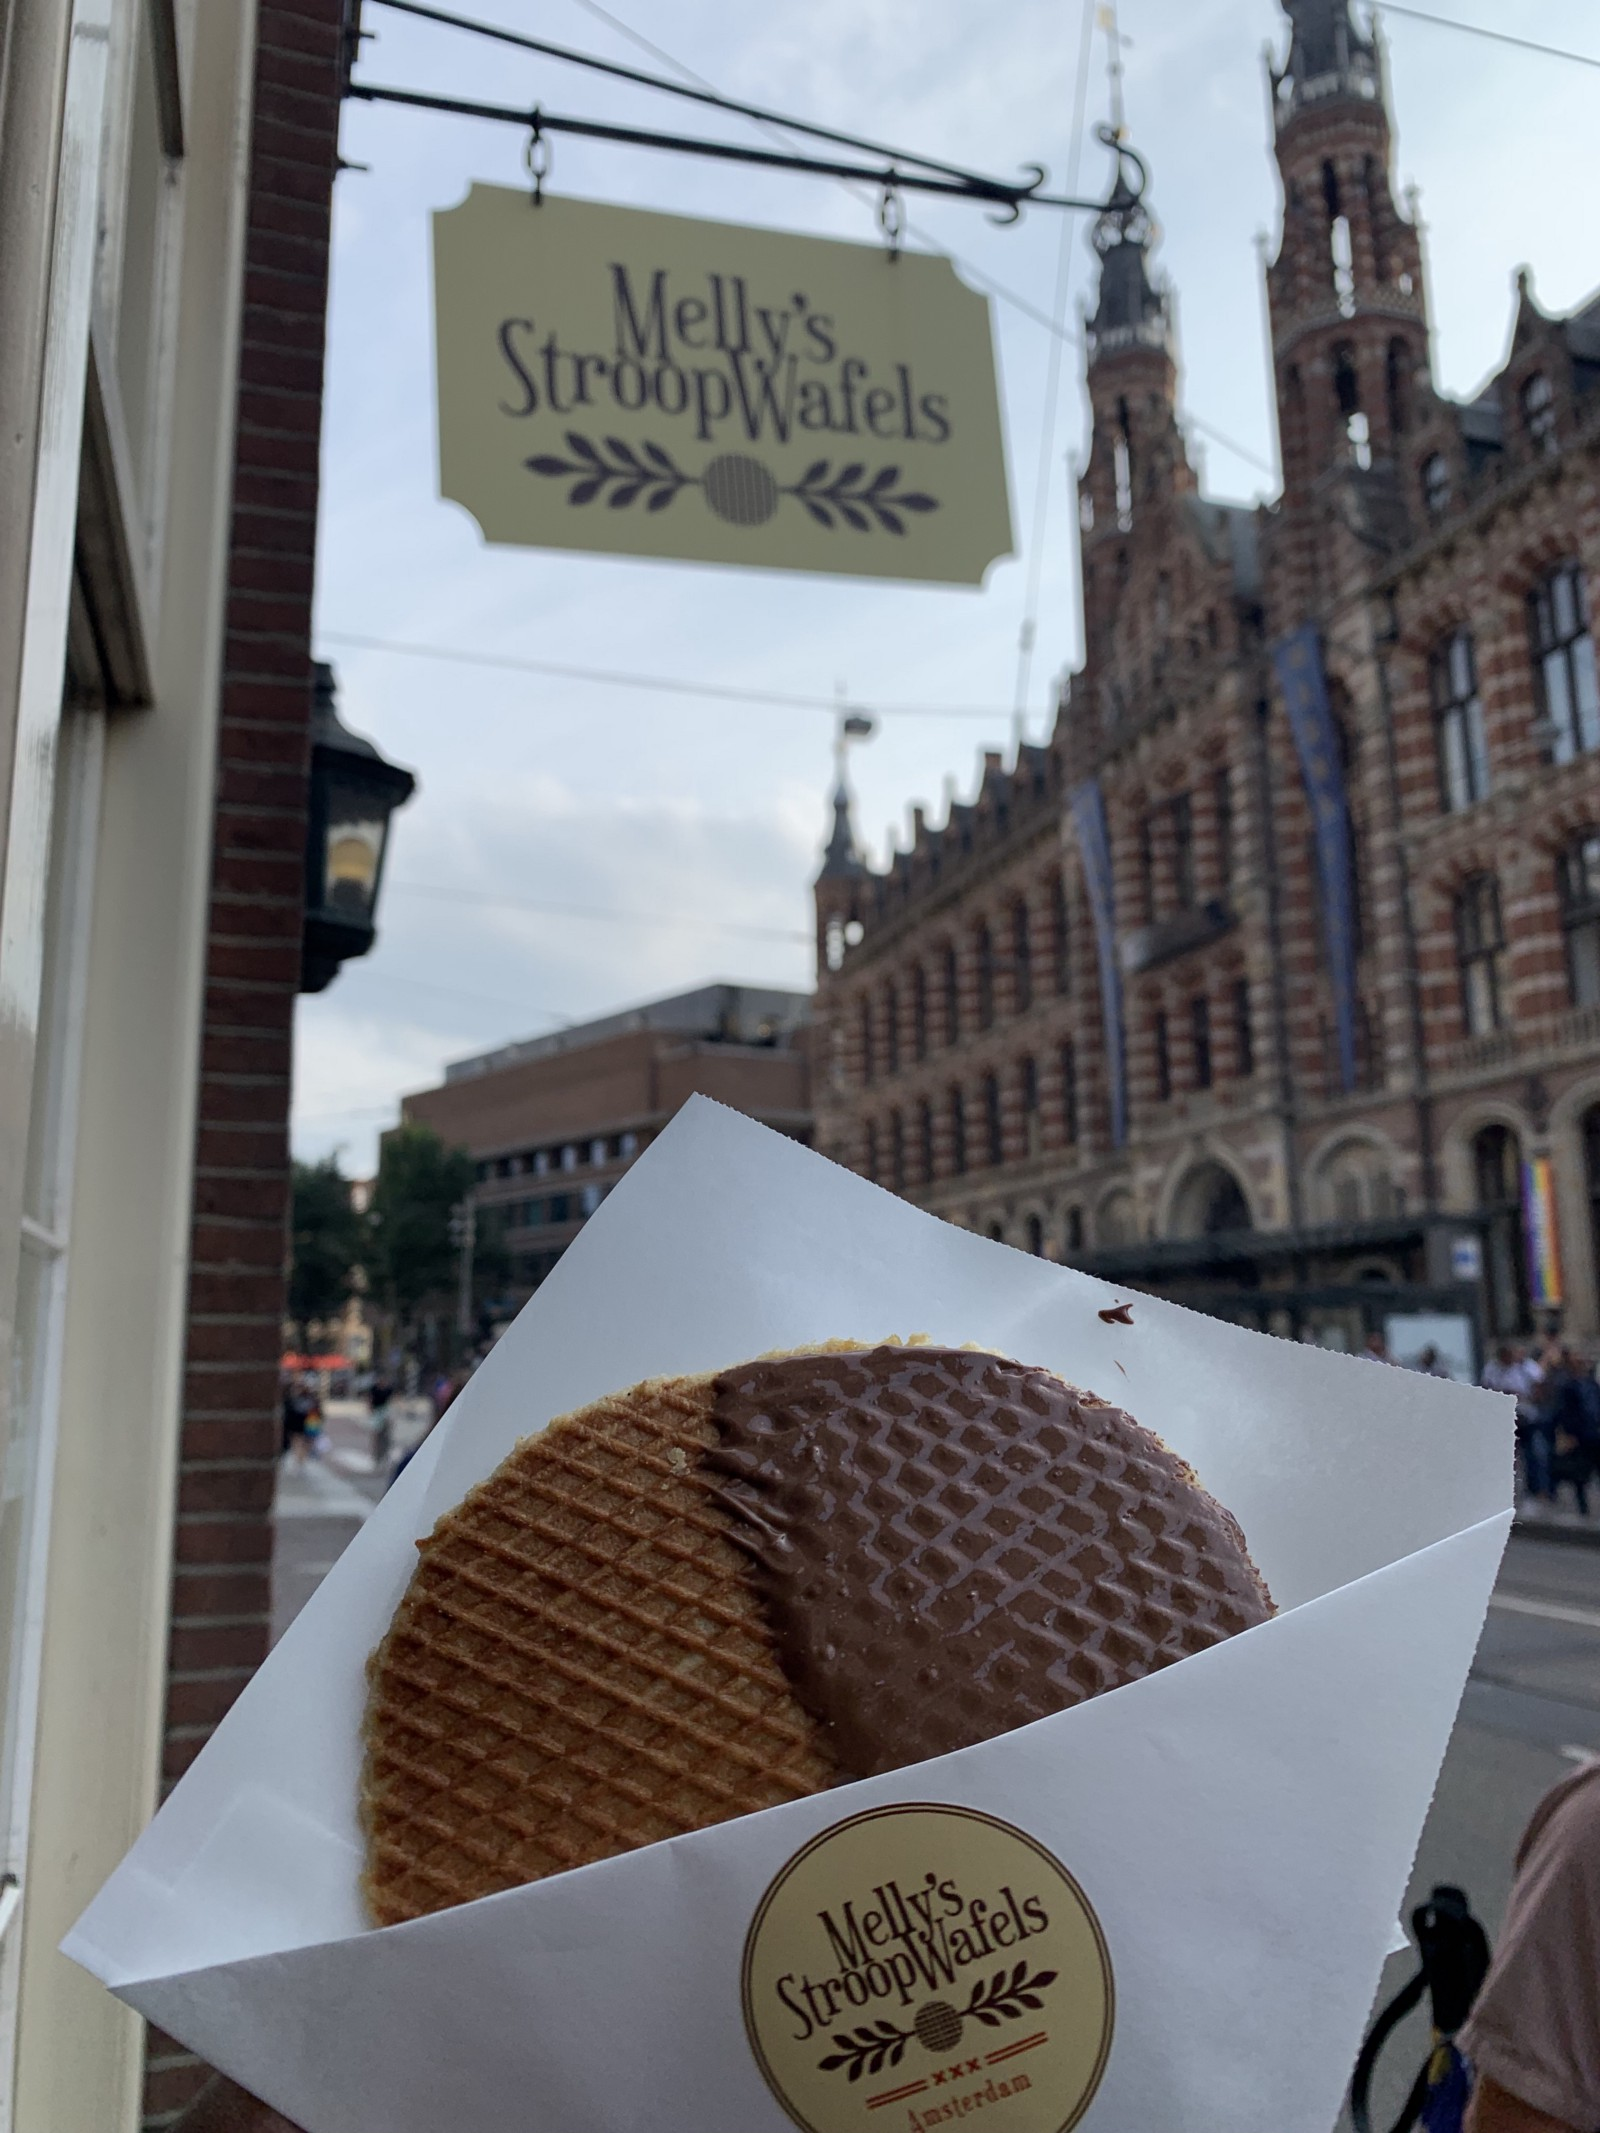 Melly's Stroopwaffles in amsterdam